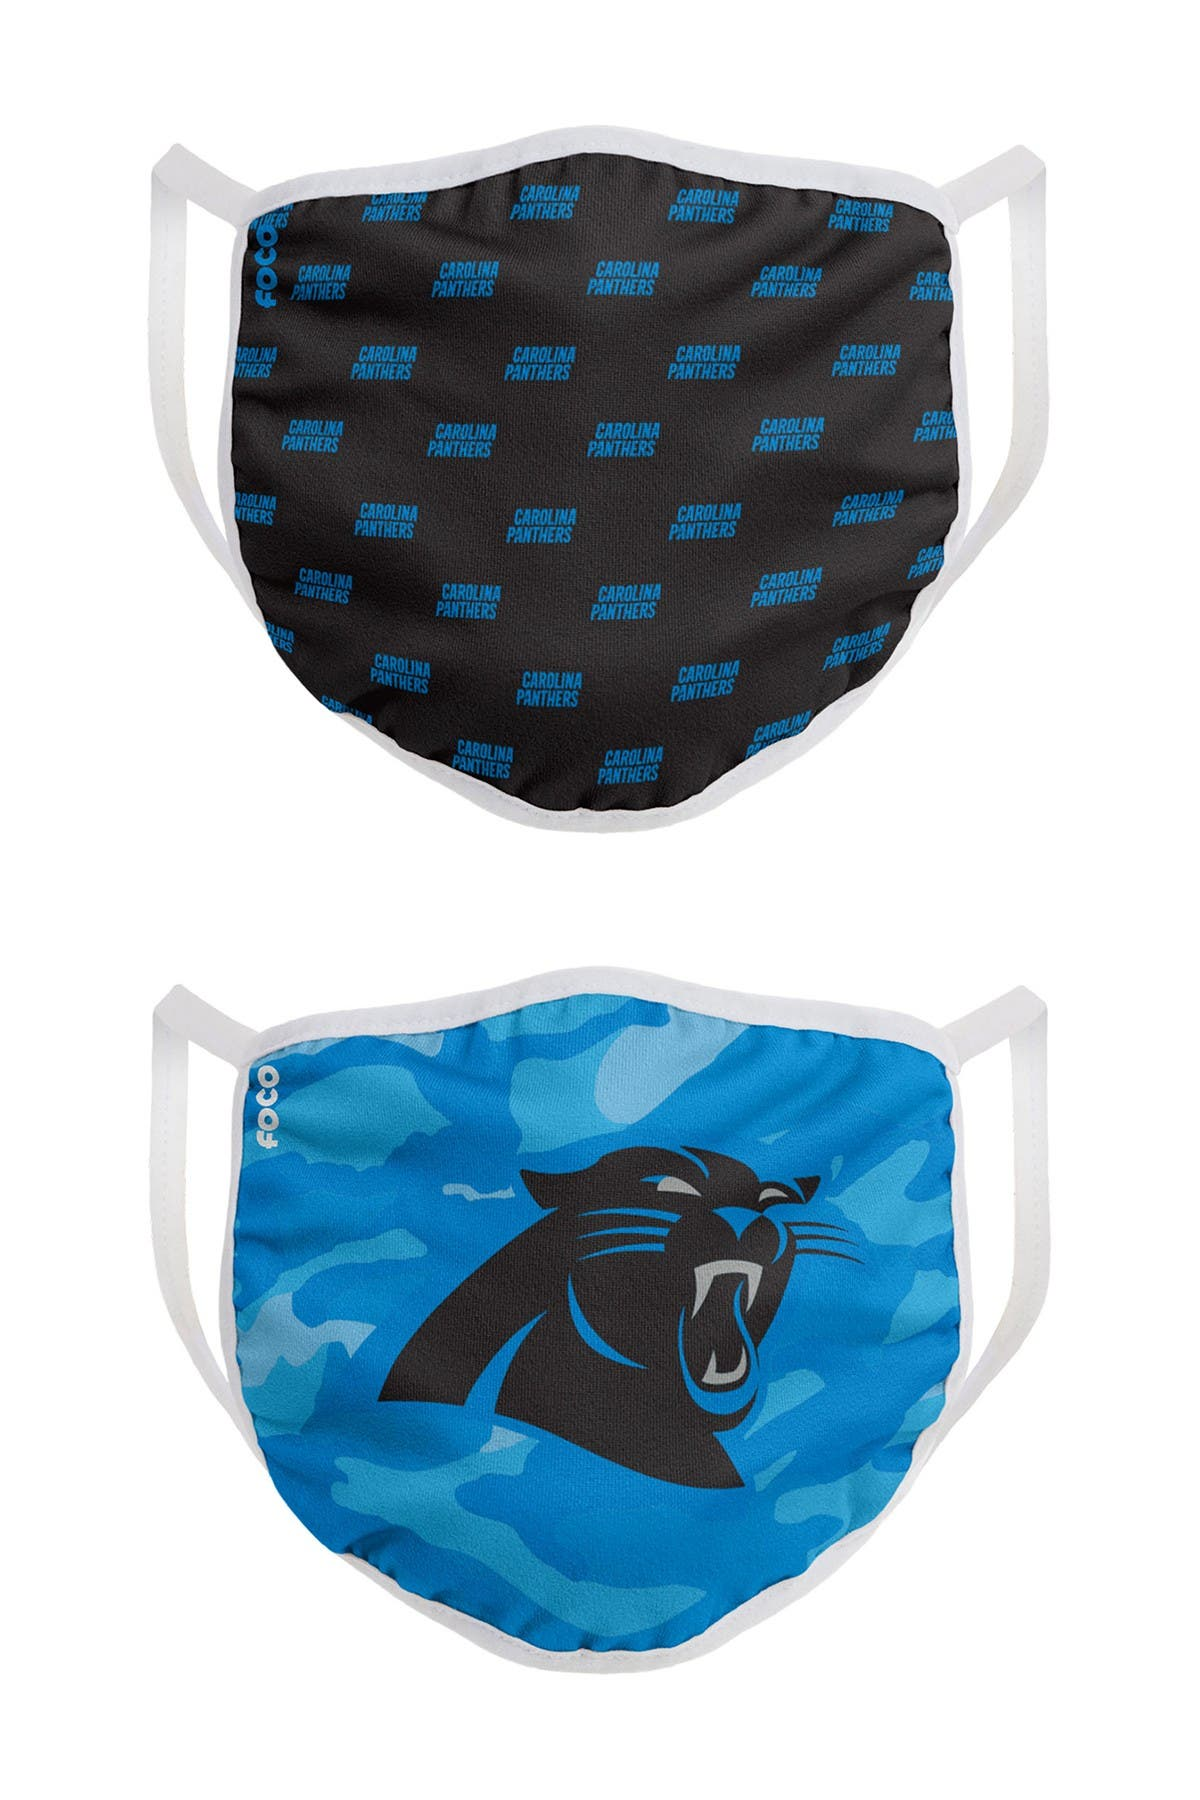 Image of FOCO NFL Carolina Panthers Clutch Printed Face Cover - Pack of 2